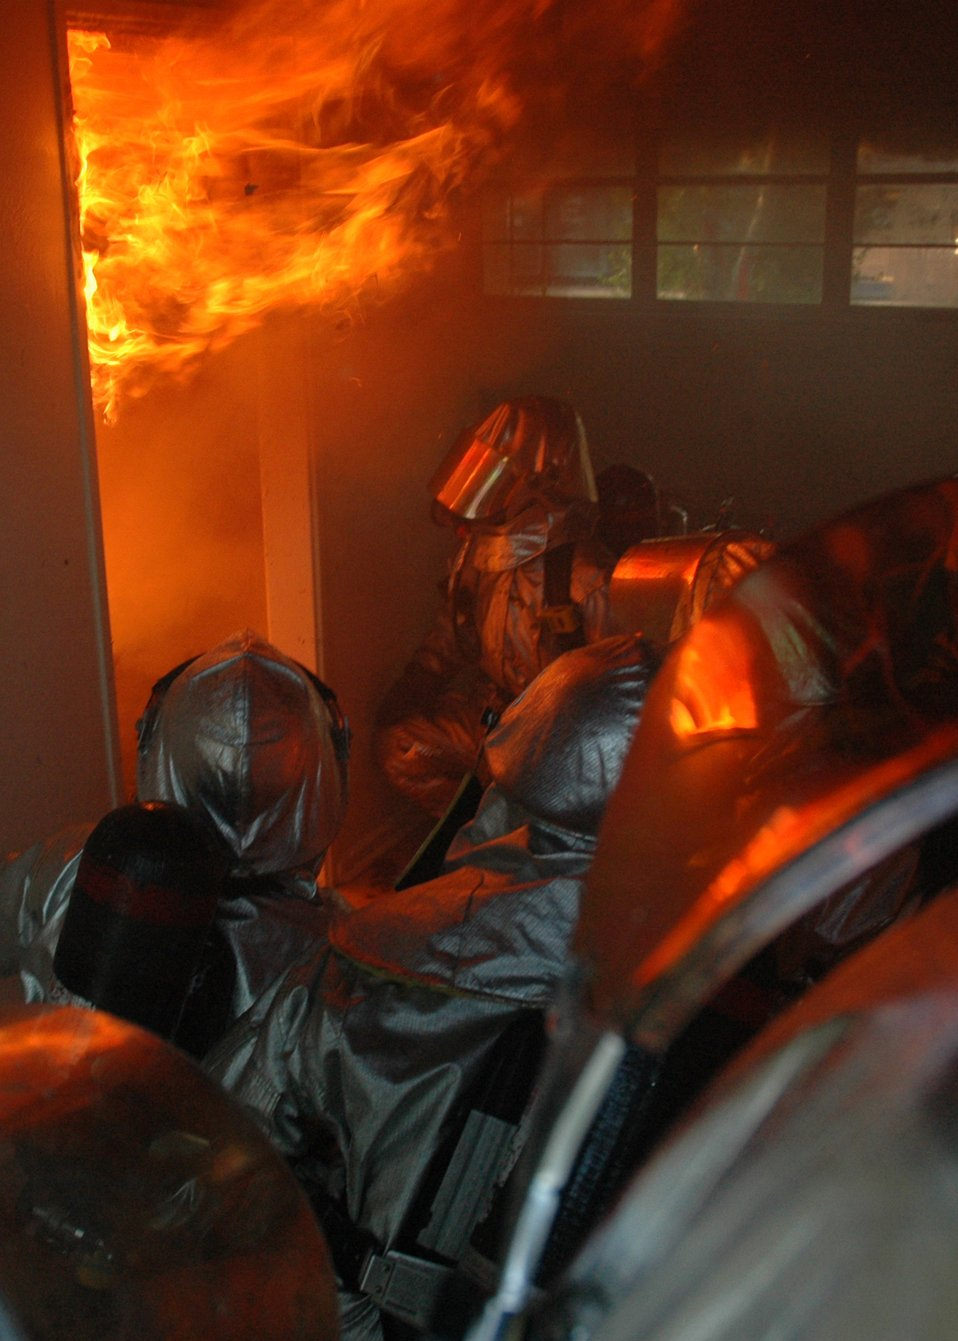 Air Force firefighters fuel flames for live fire training